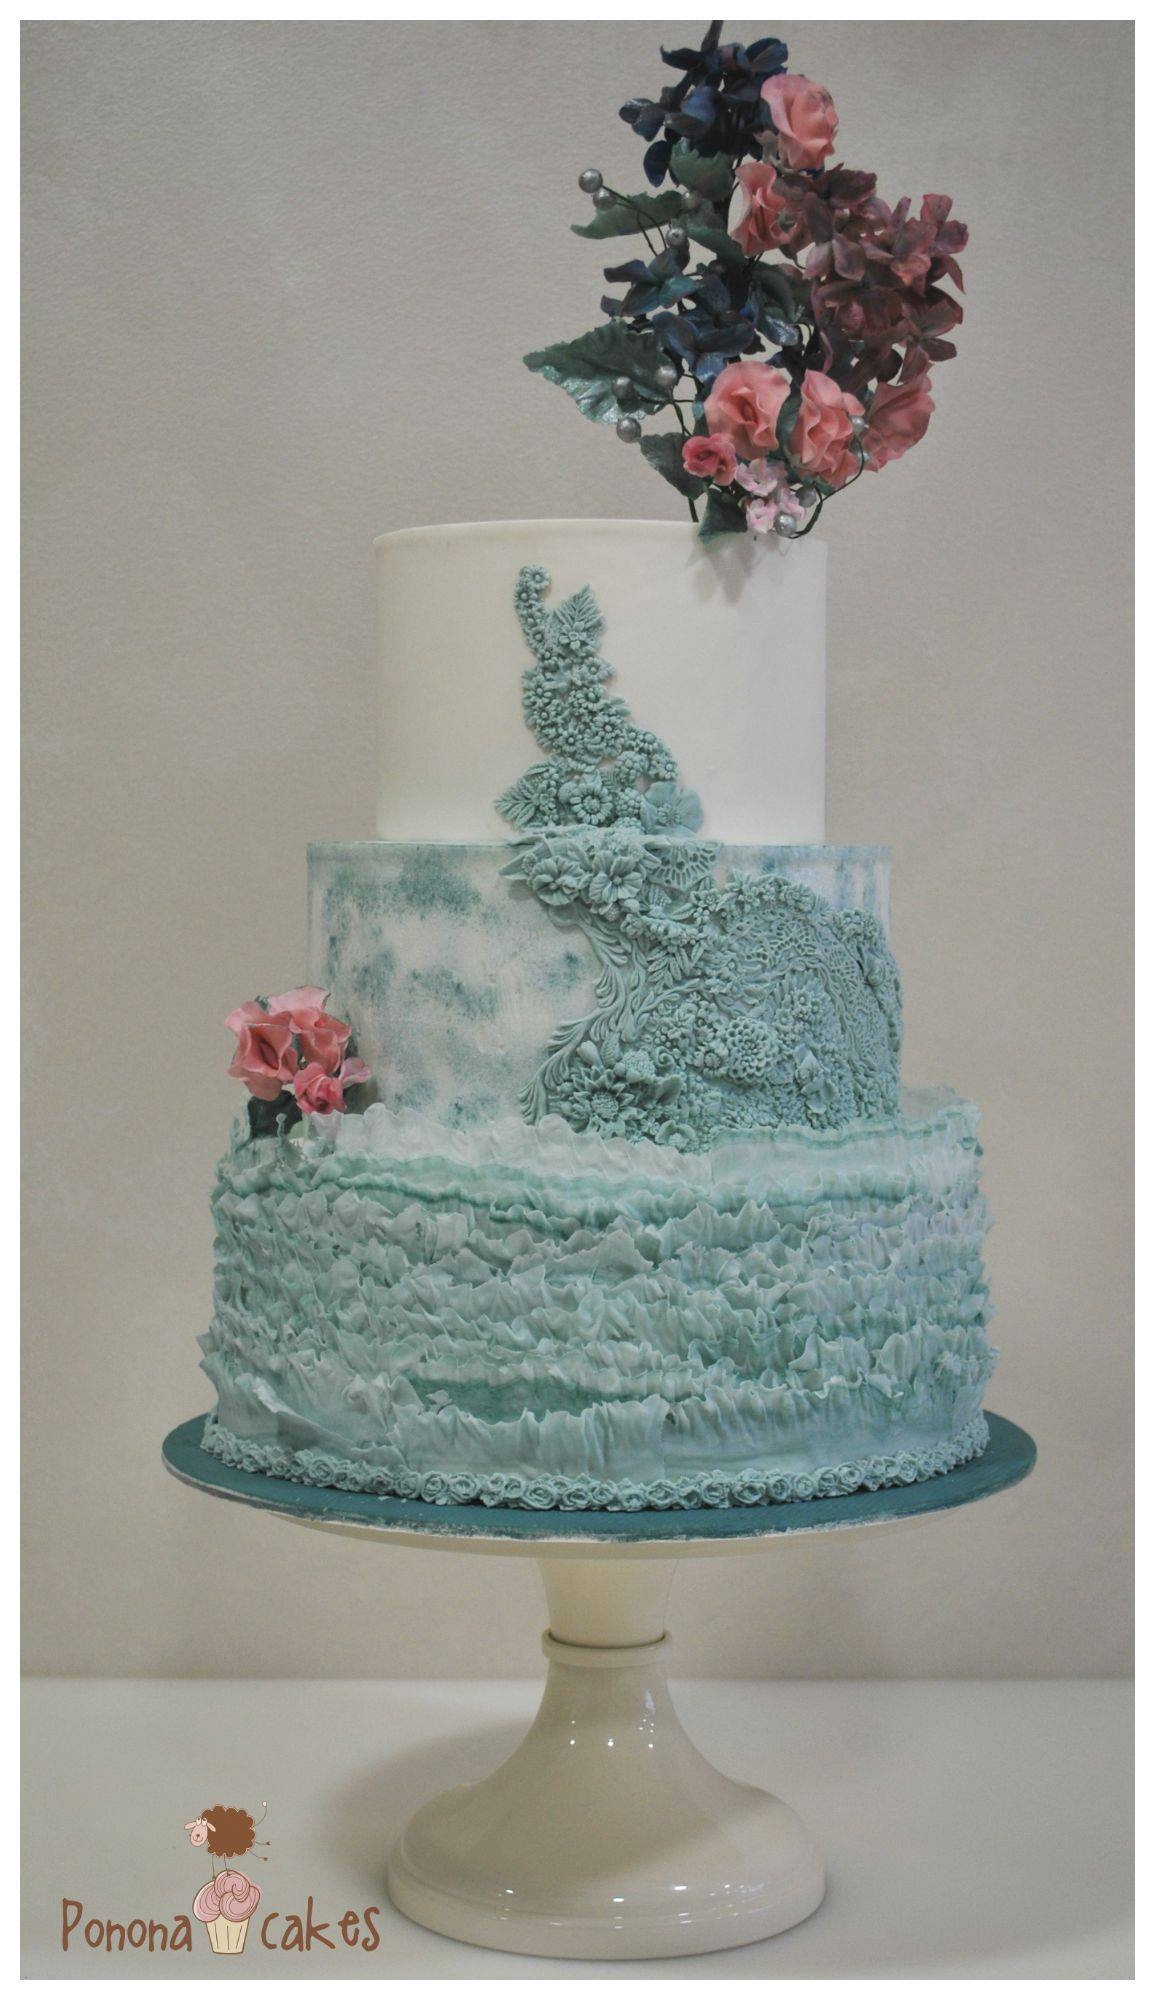 White & turquoise textured fondant wedding cake